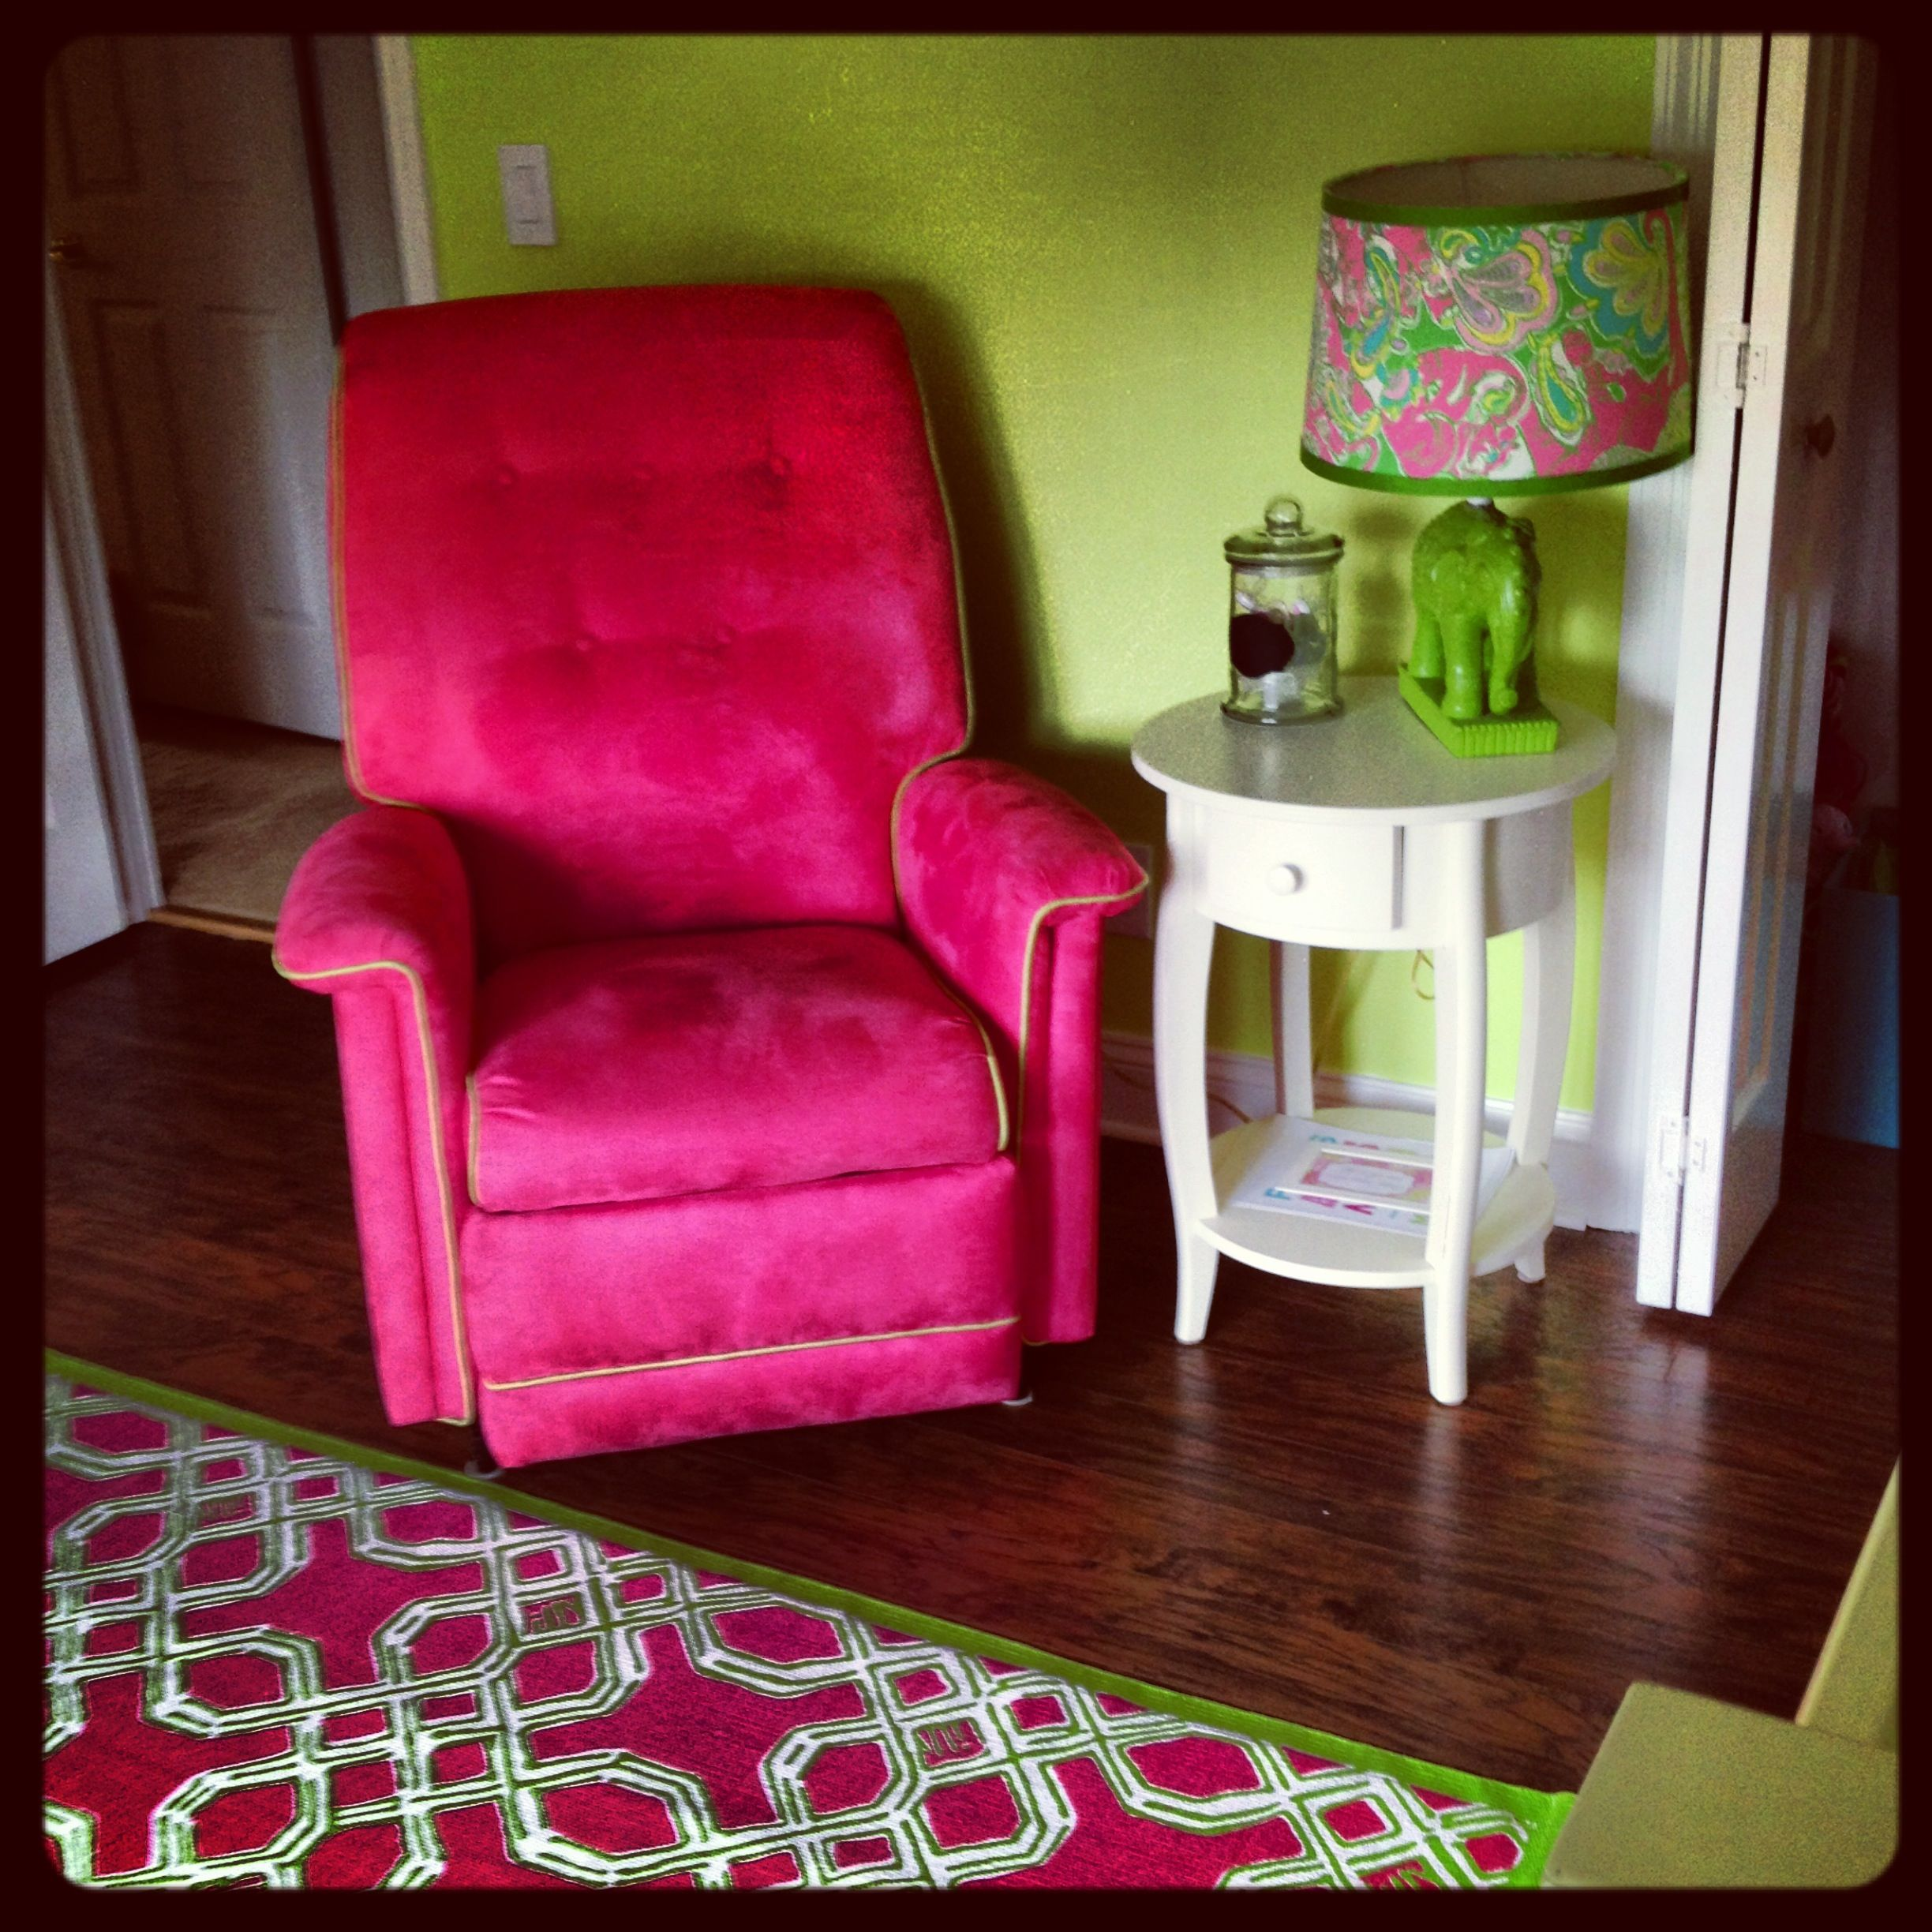 Reupholstered recliner pinkandgreen pbk end table DIY elephant